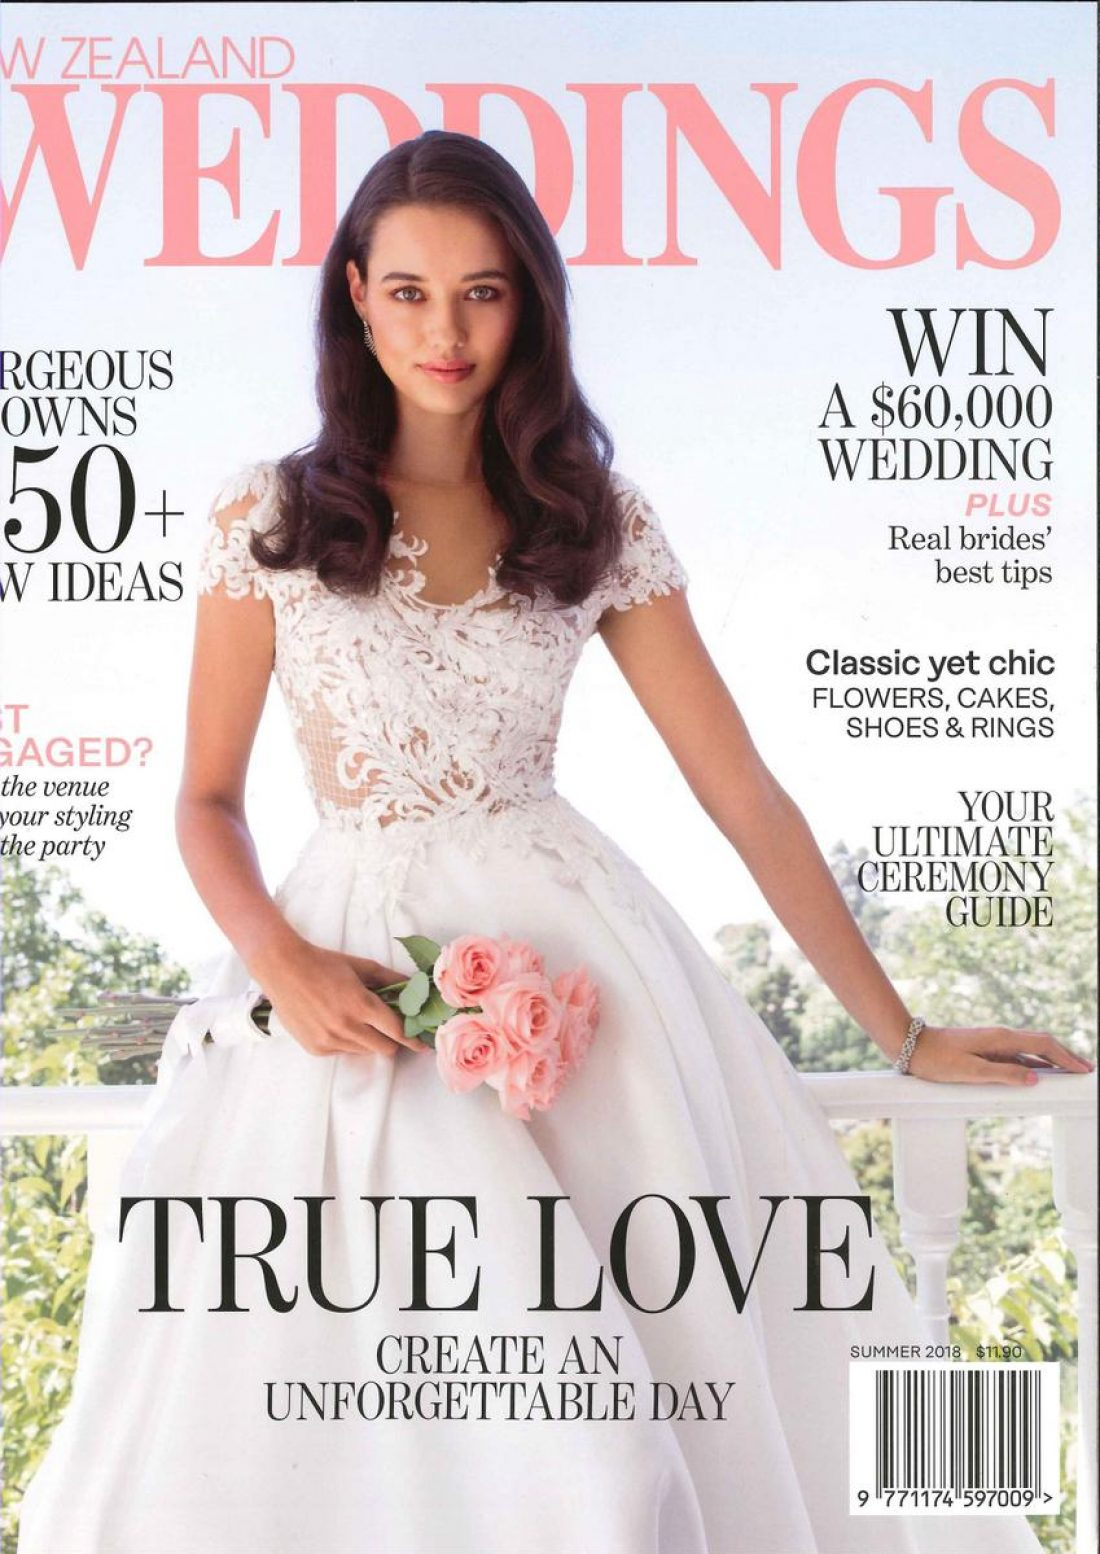 Zoe Stowers photographed by Carolyn Haslett for the Cover of New Zealand Weddings Magazine